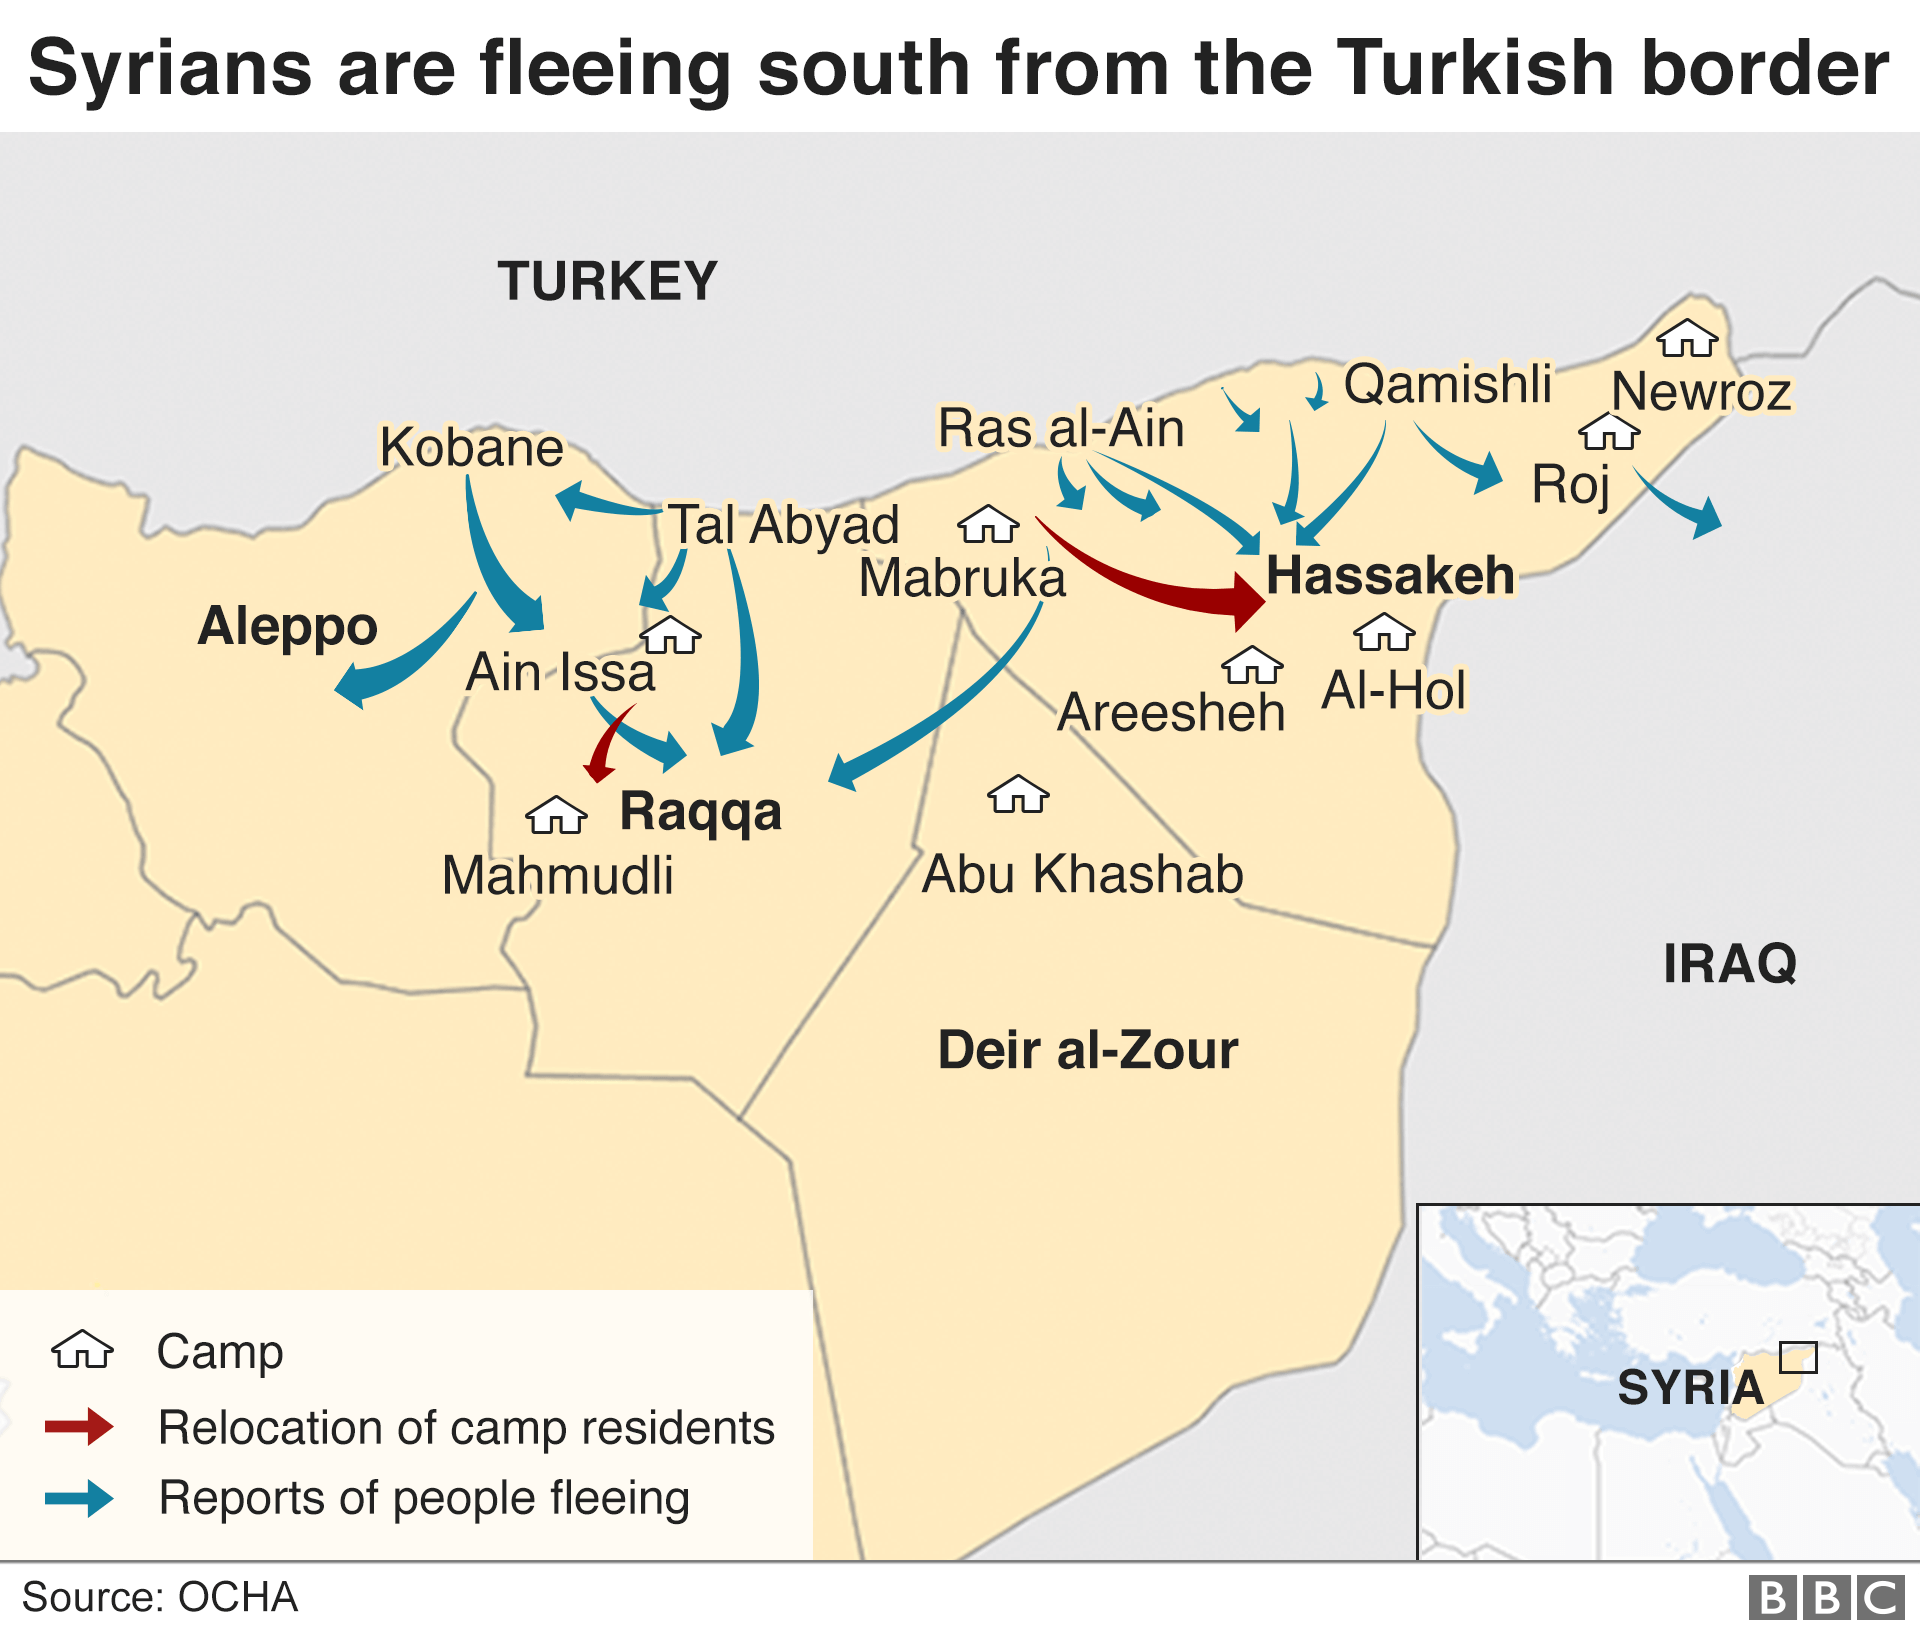 Map showing where Syrians are fleeing from in northern Syria